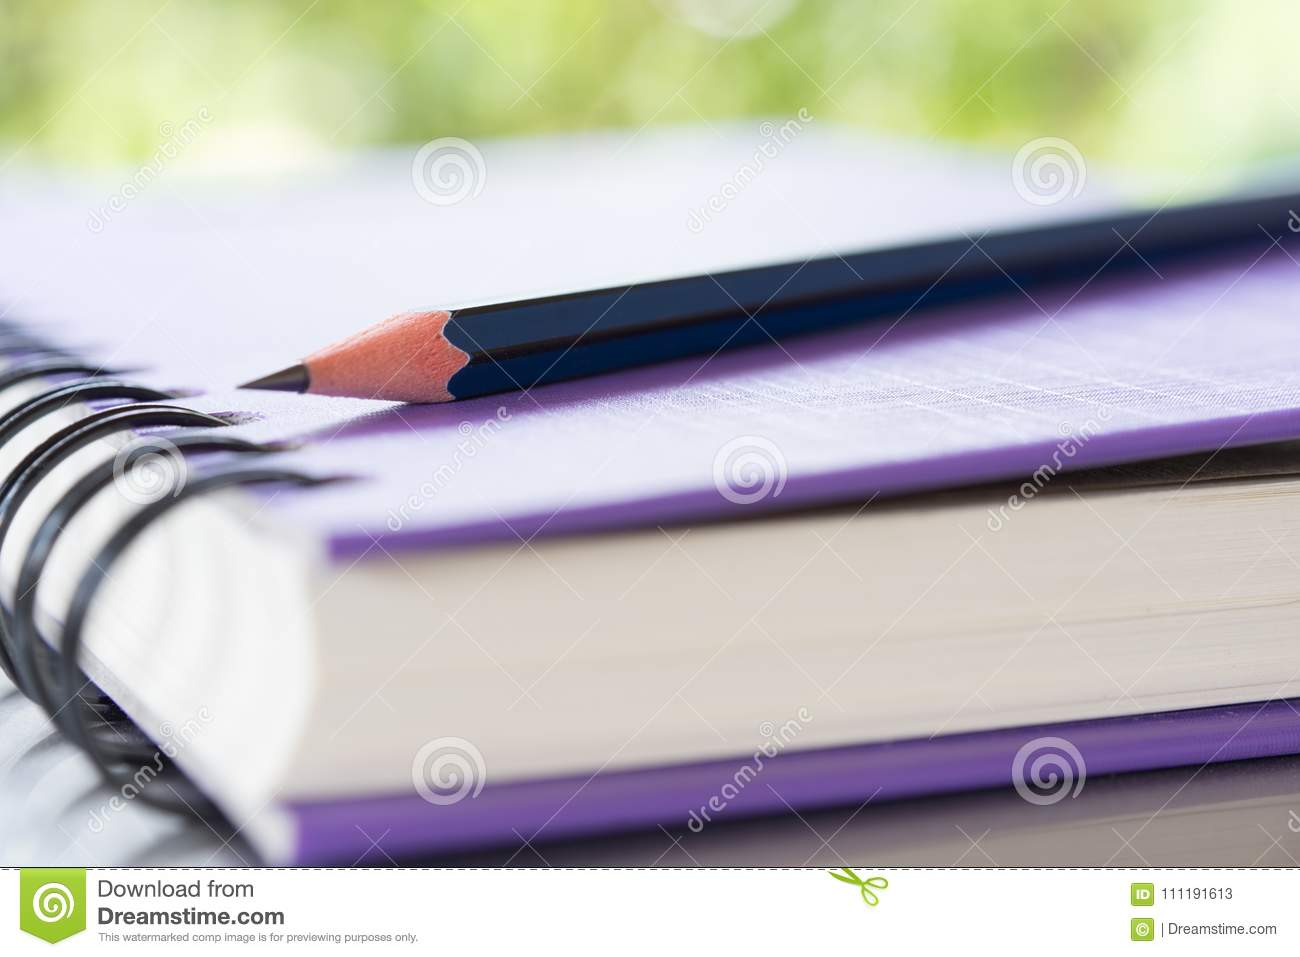 Notebooks and pencil over nature green background